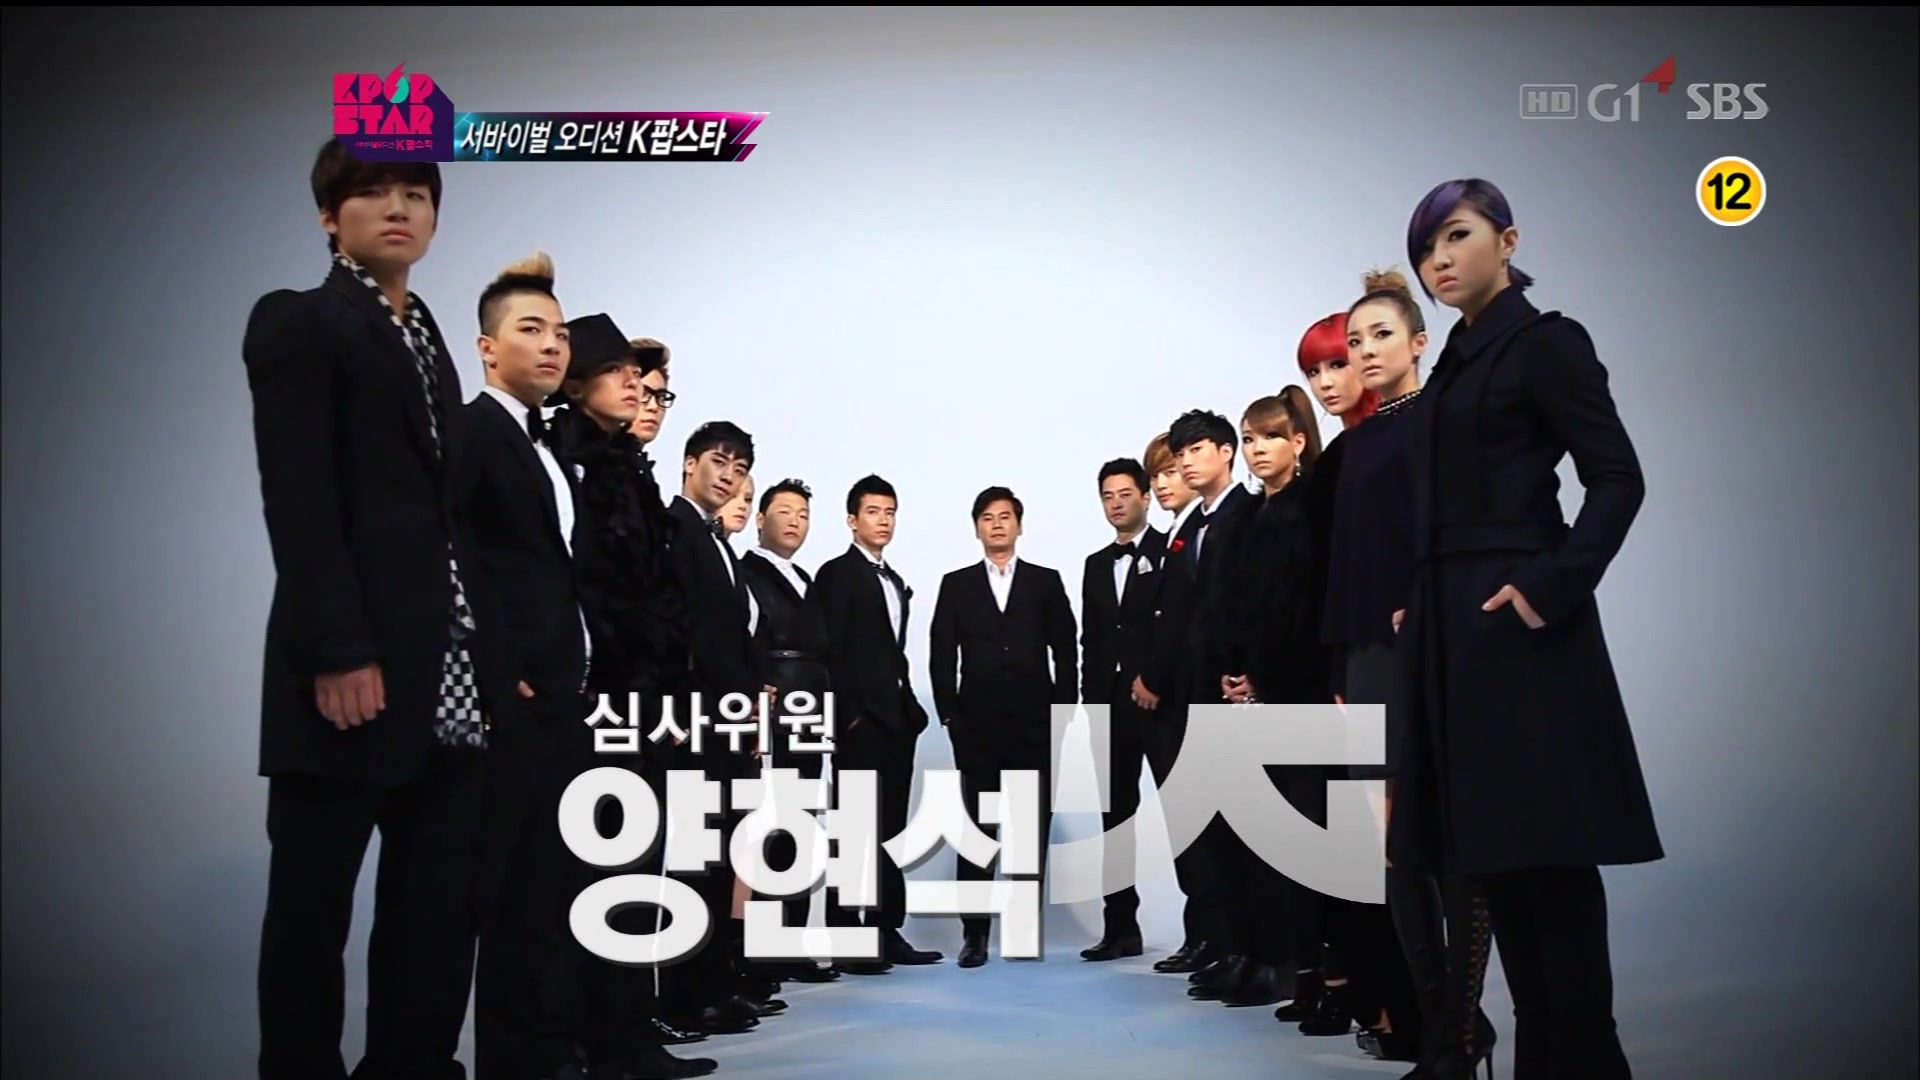 Video/Screencaps: YG Family for SBS K-POP Star